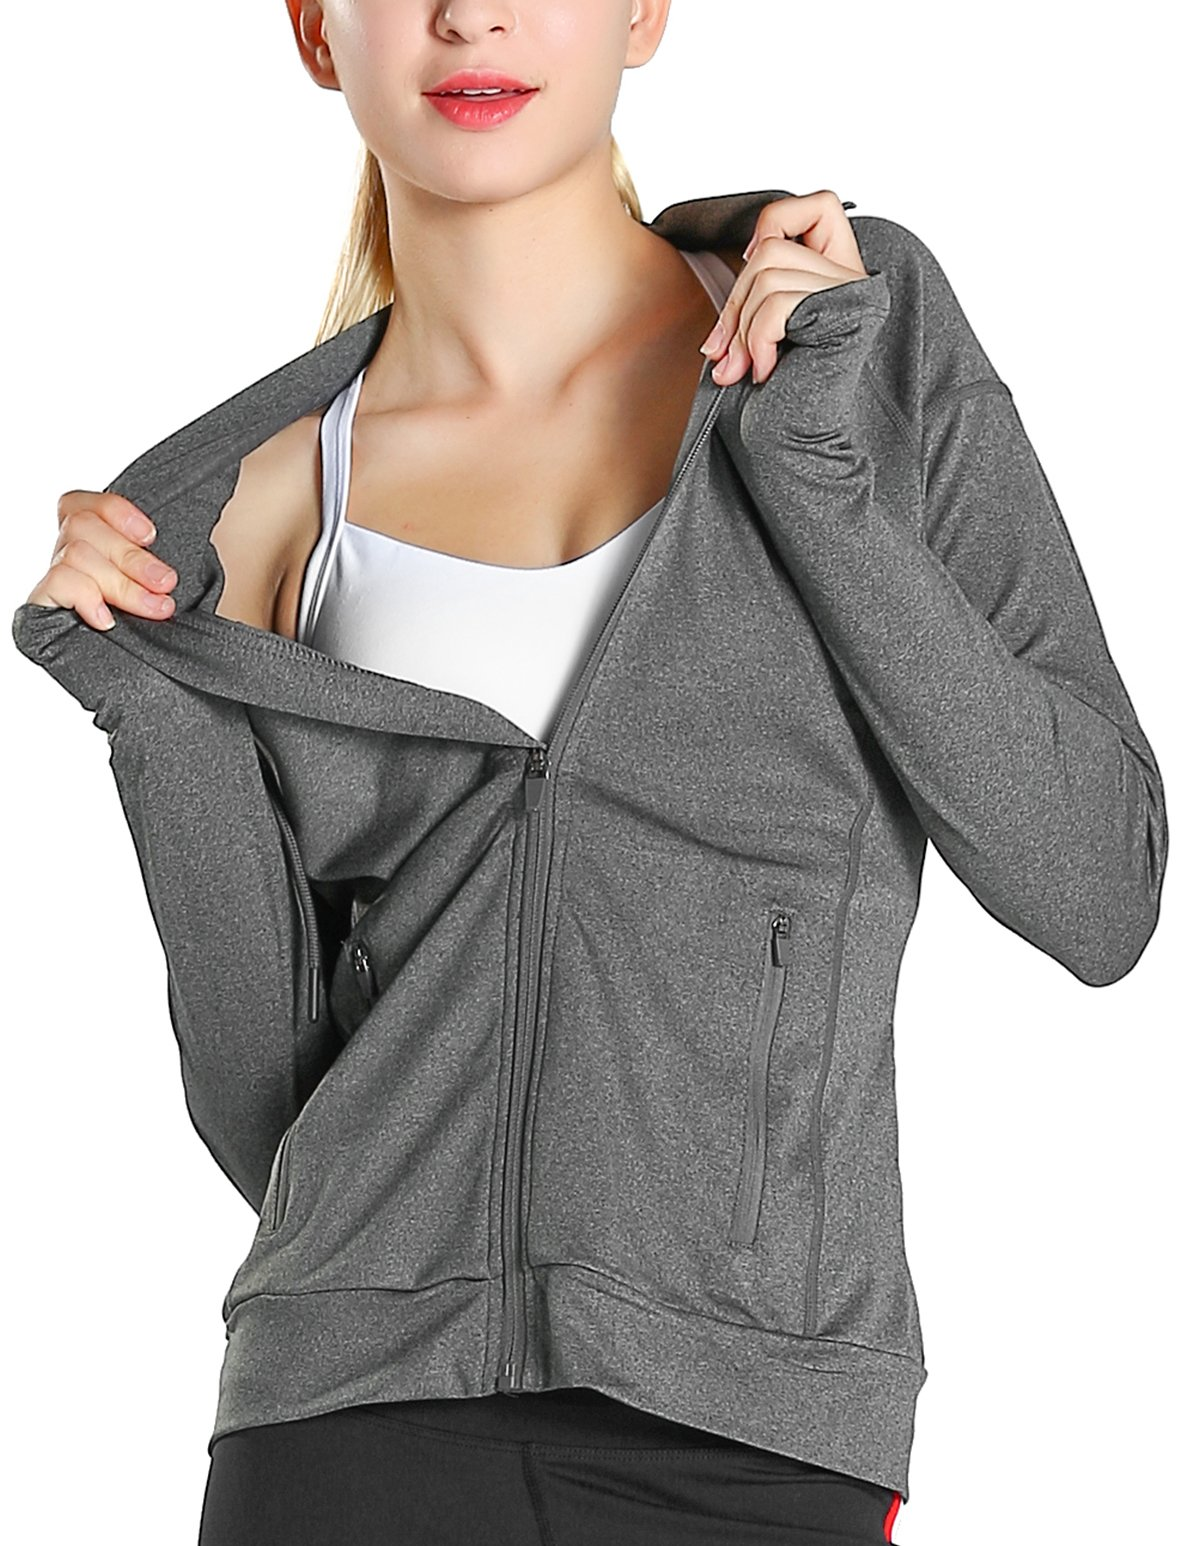 Fastorm Womens Full Zip Athletic Jacket Hoodie Activewear Workout Sweatshirt Track Jackets with Thumb Holes Grey L